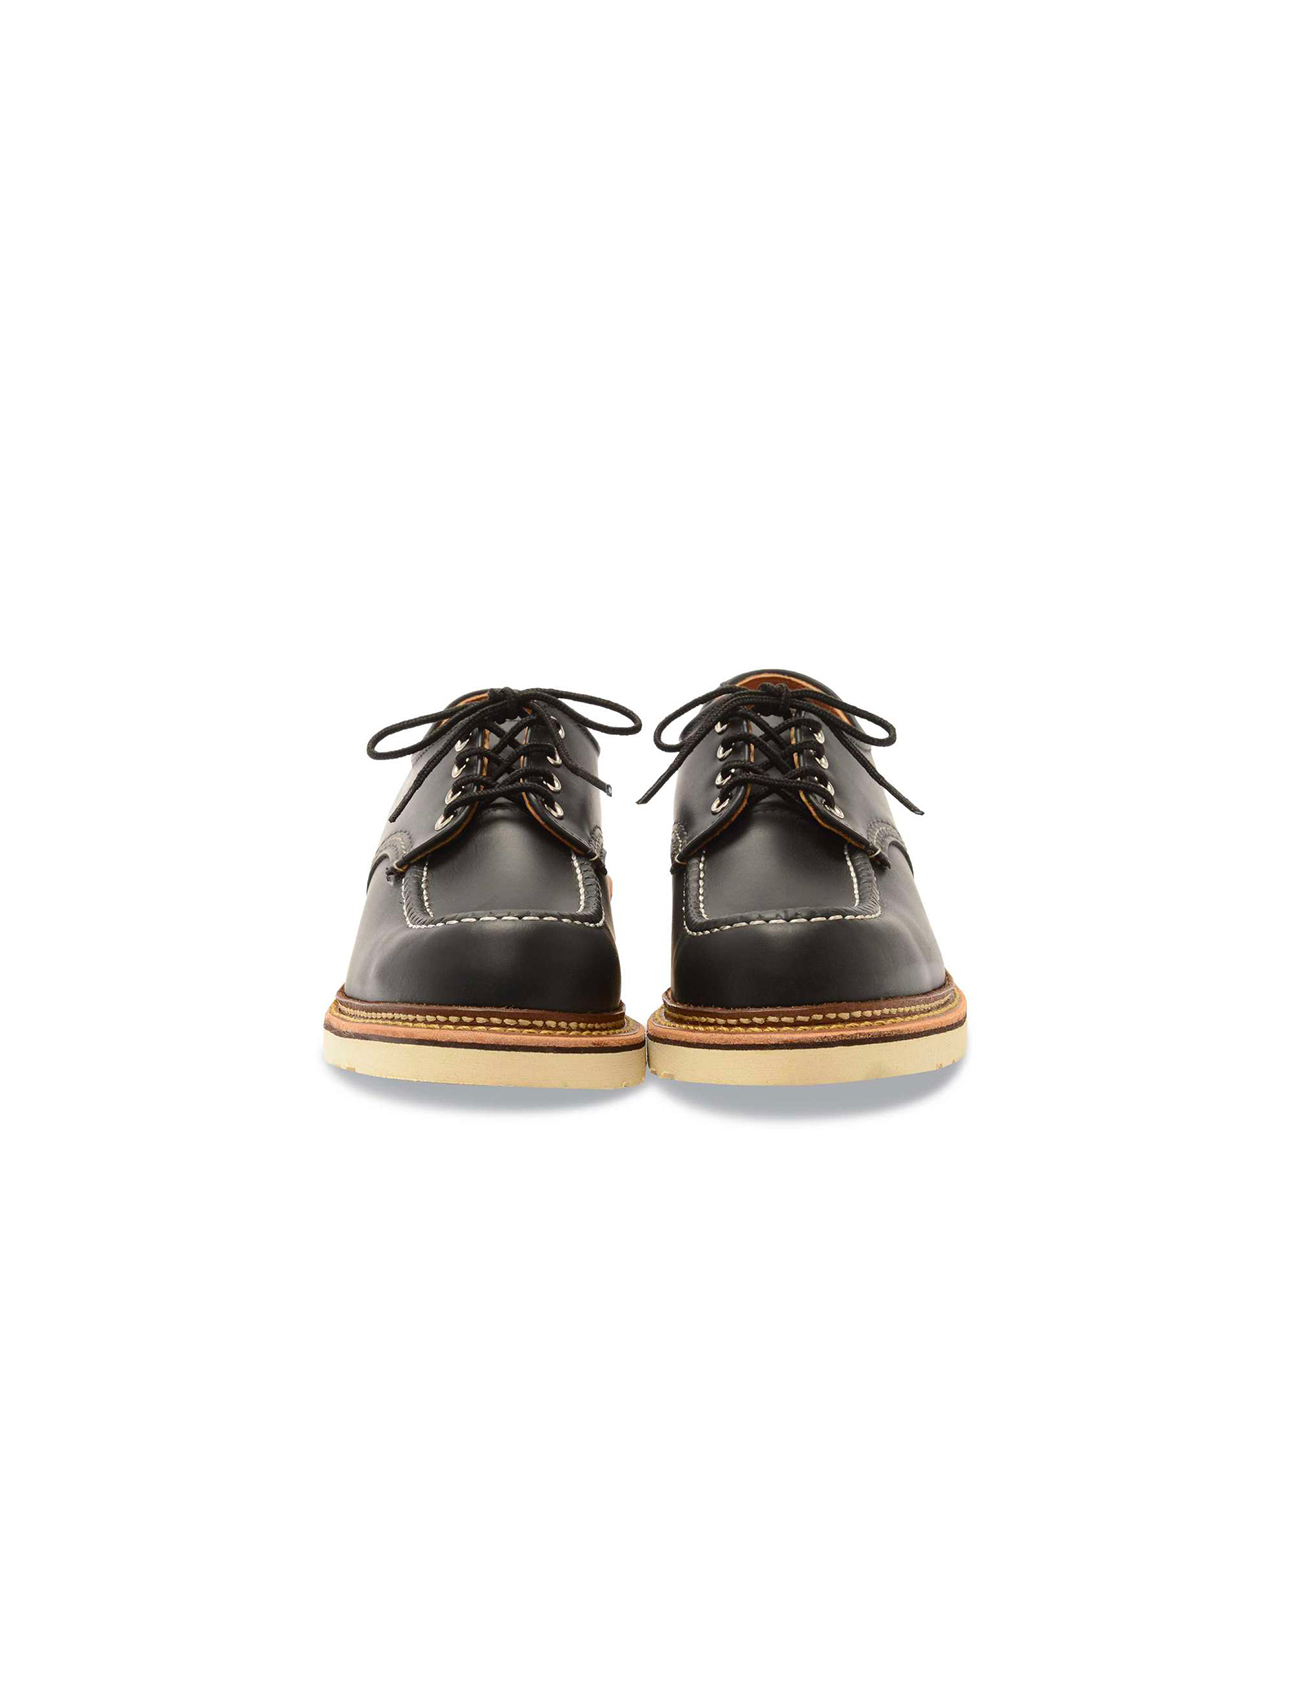 Red Wing 8106 Classic Oxford Black Chrome | Wooden Store